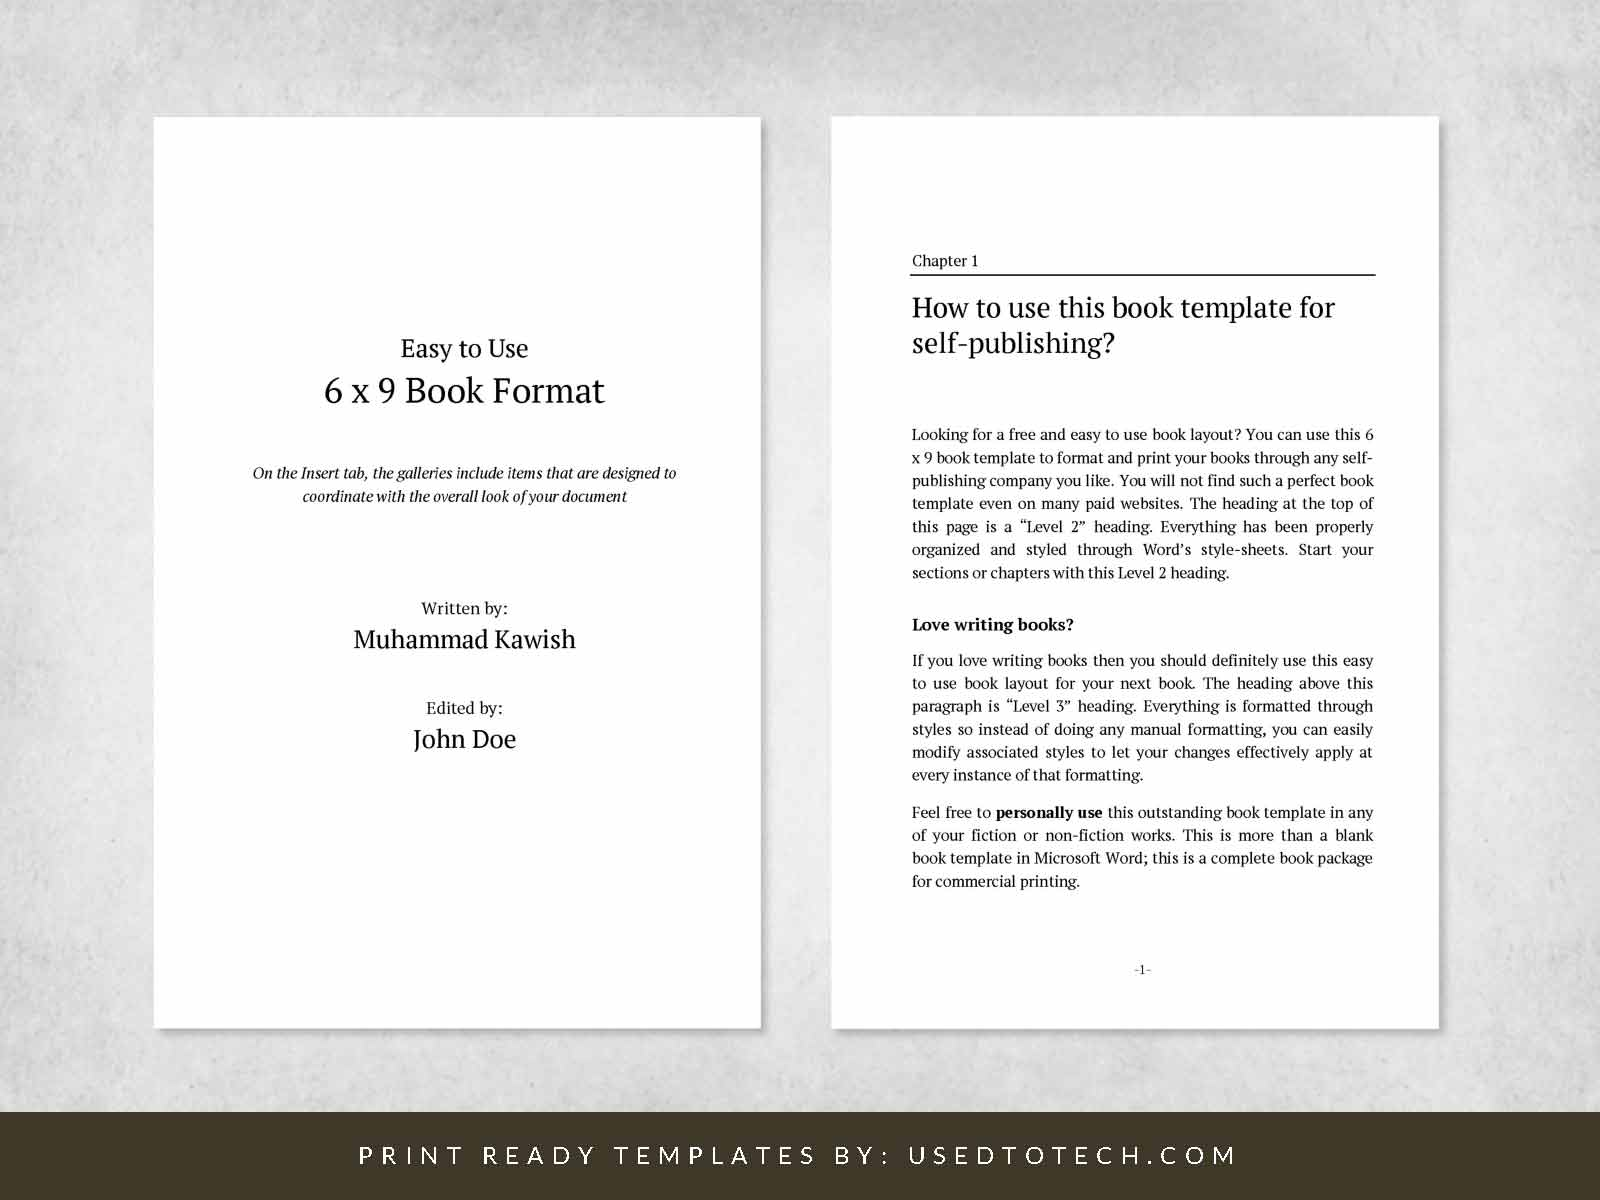 Easy-to-use 6 x 9 book format for Word